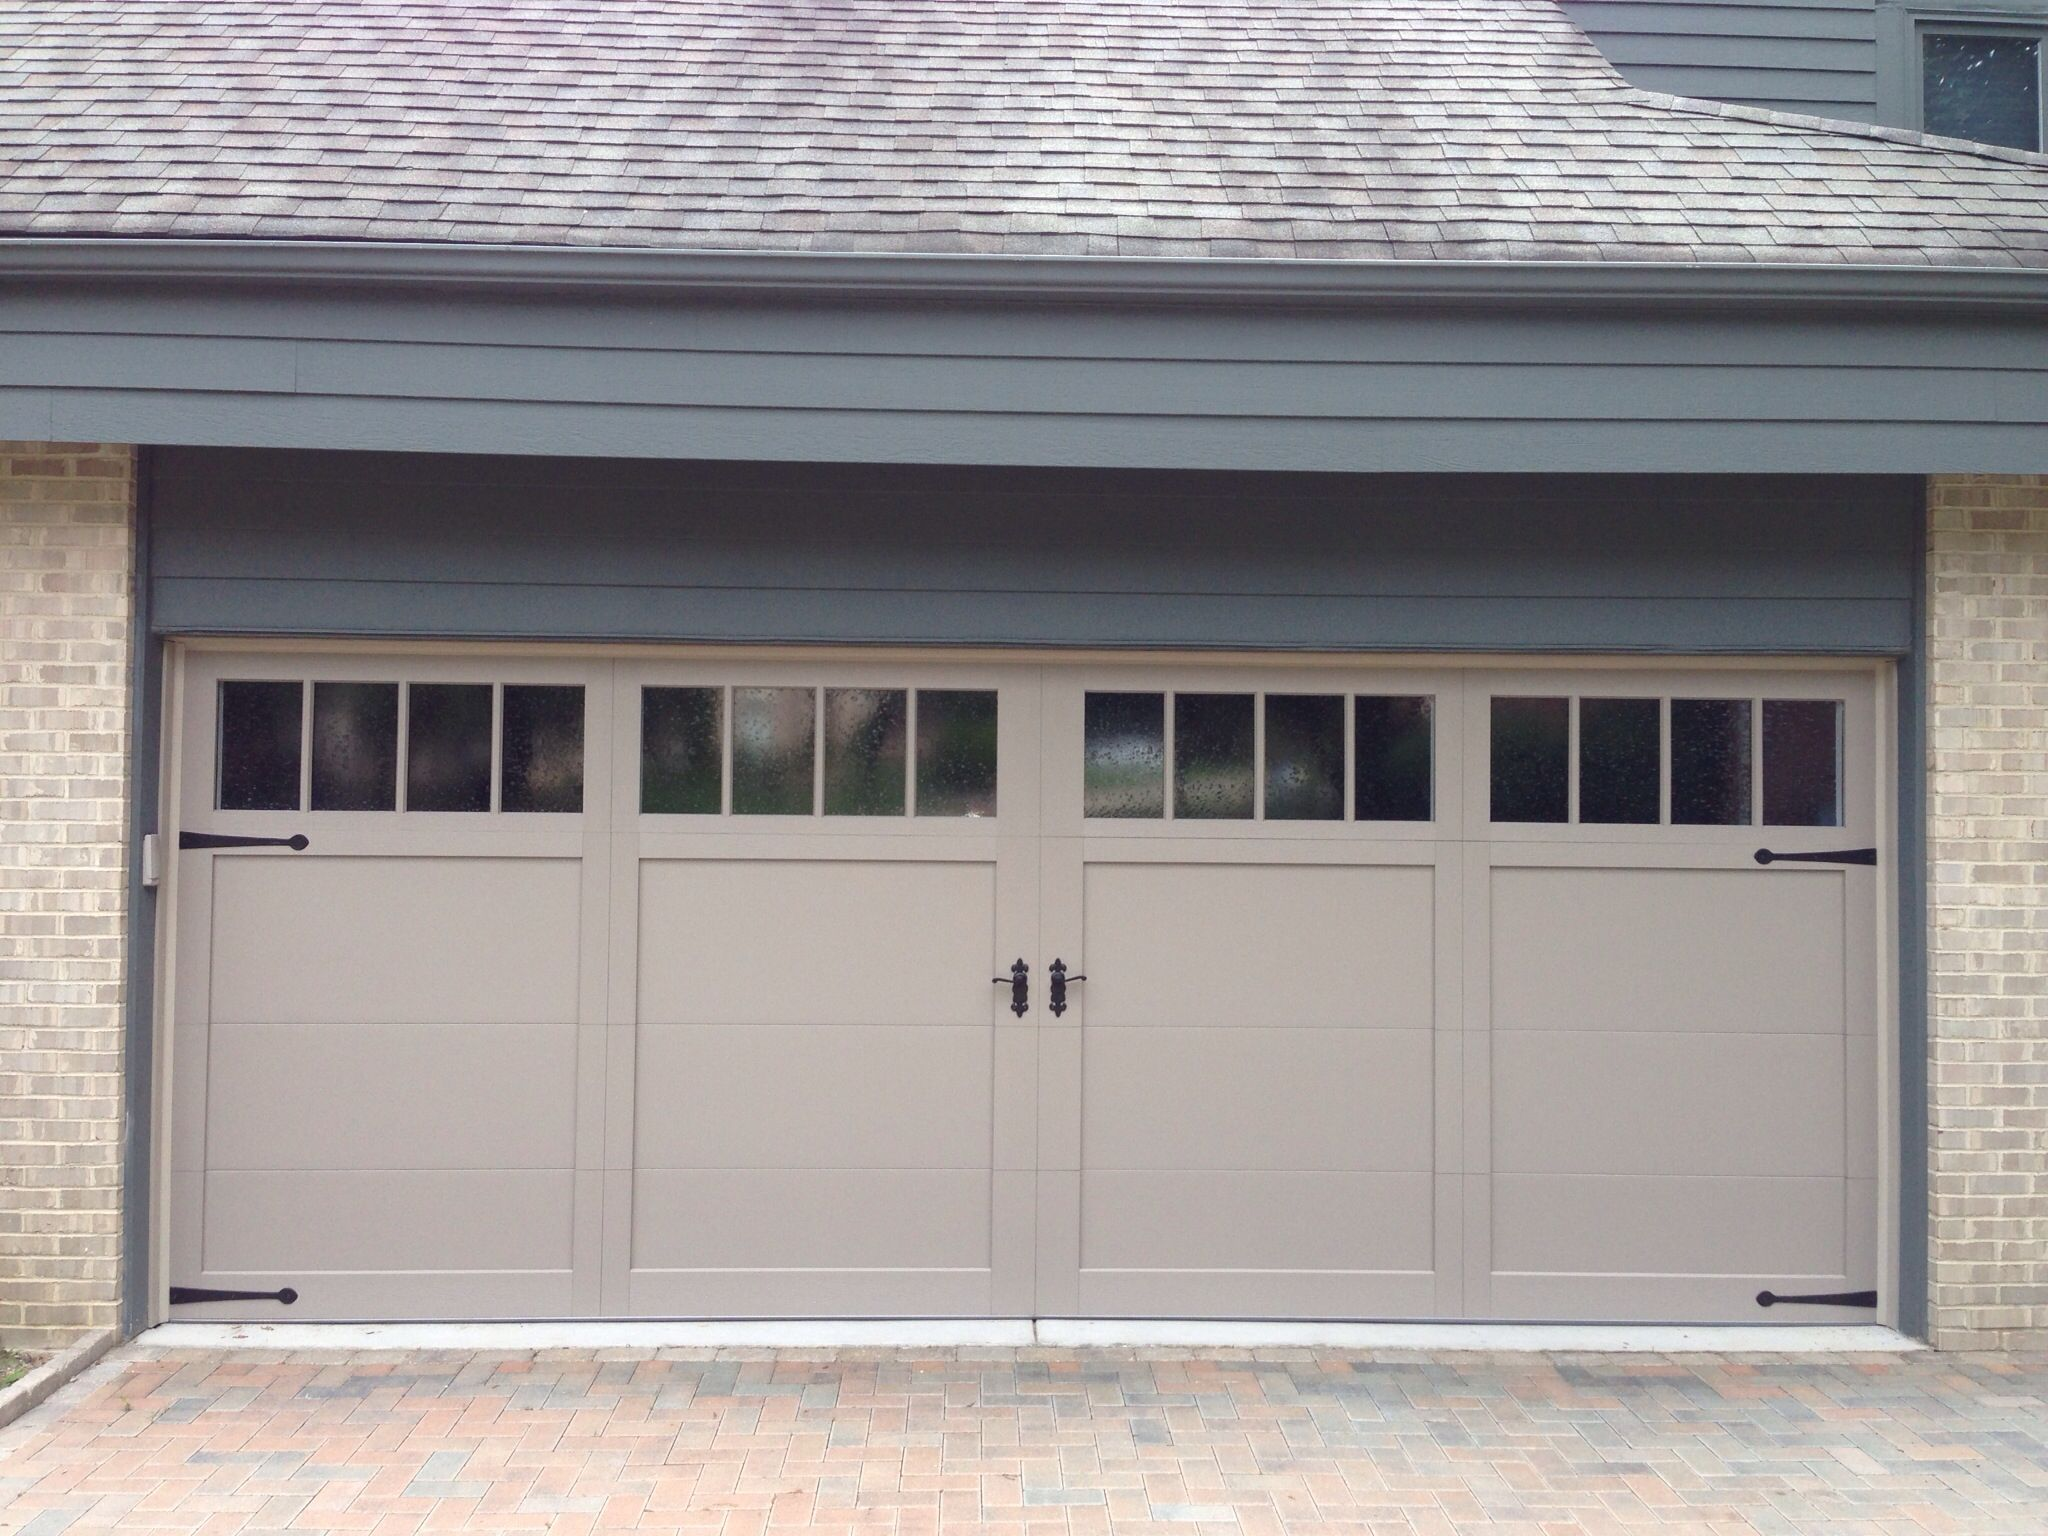 Garage door repairs by s amp t garage doors of northern virginia - 18 U0027 X 7 U0027 C H I Garage Door Model 5331 Color